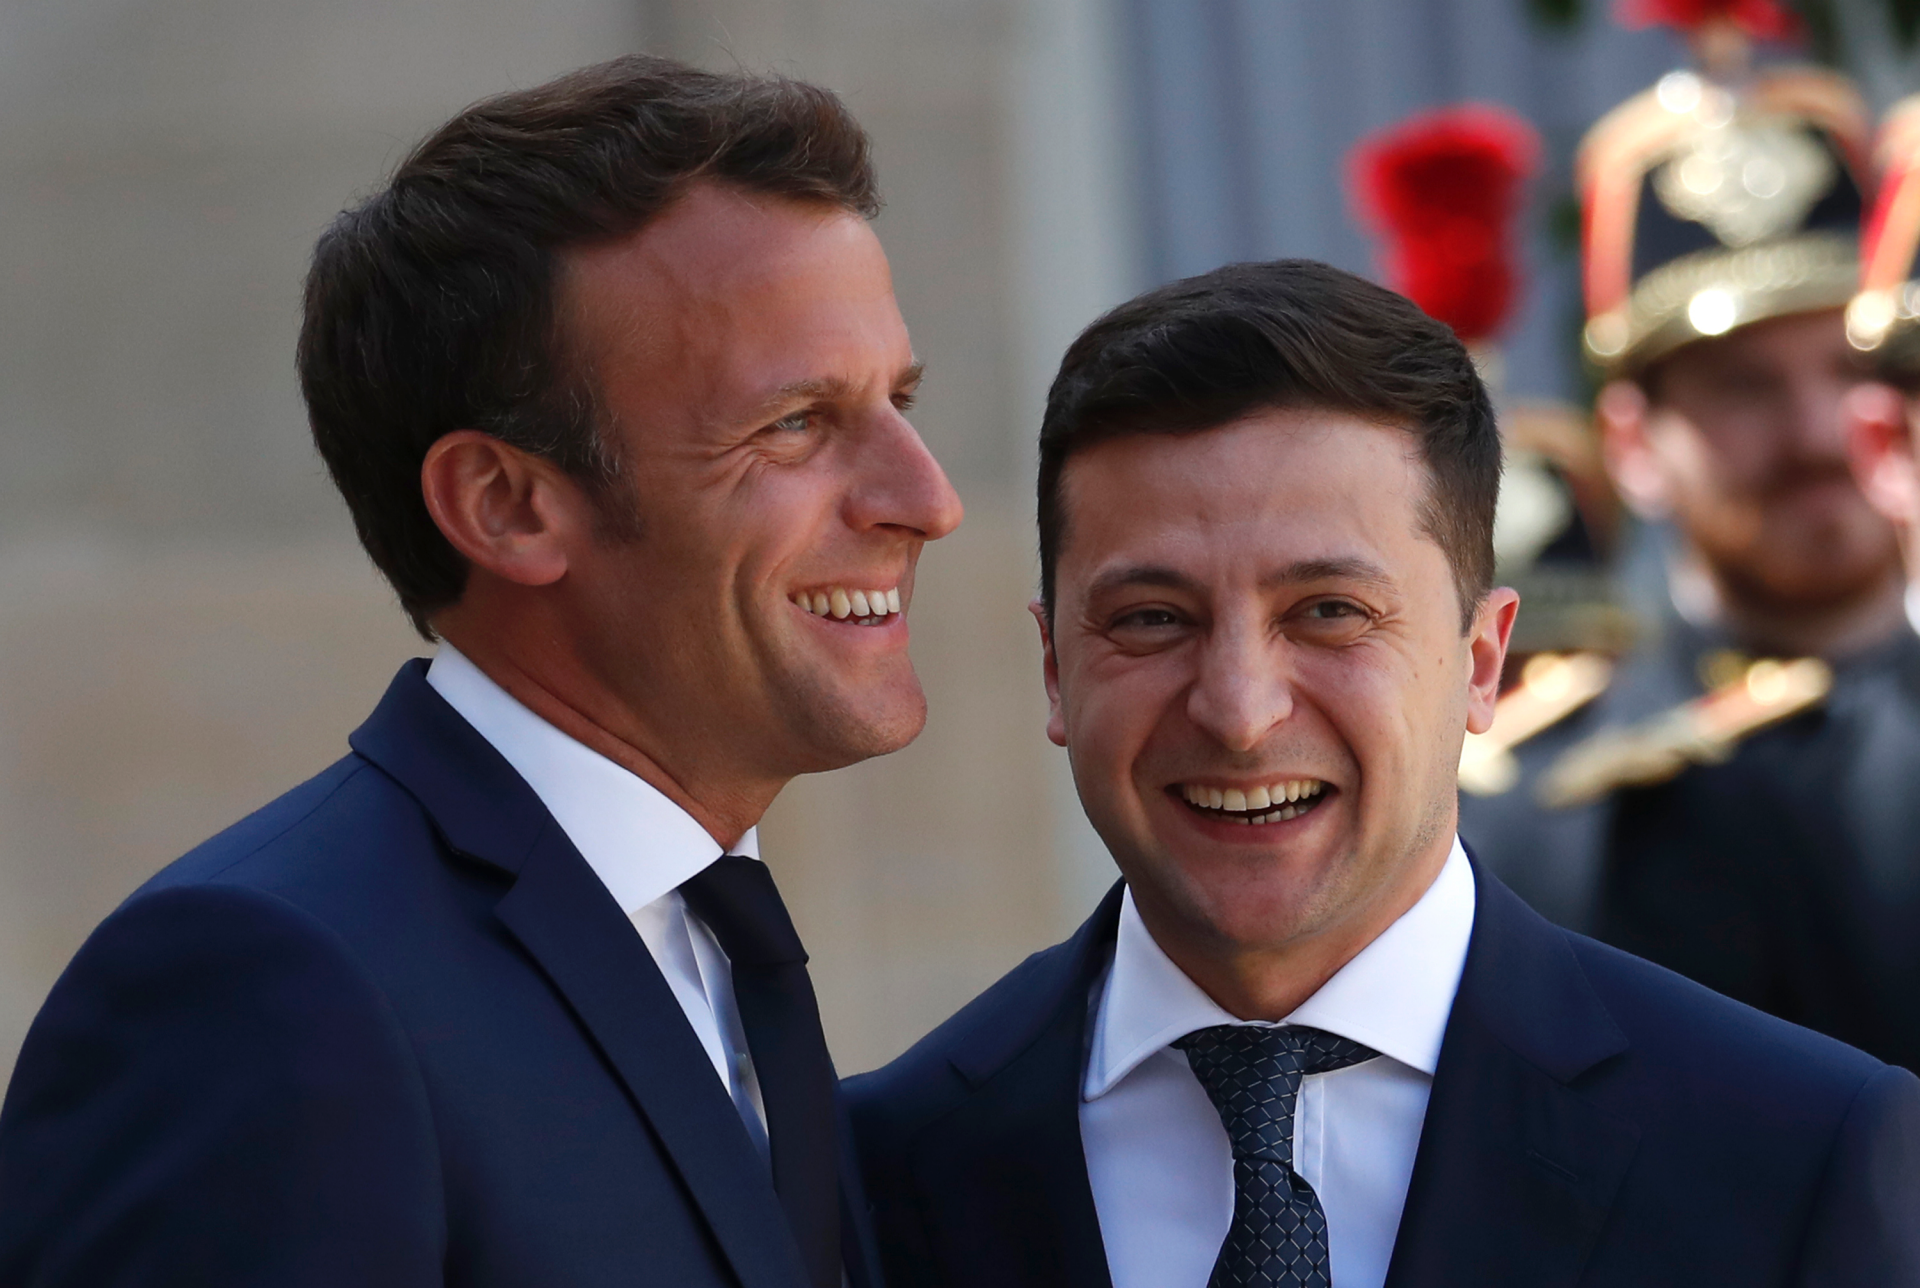 France vows to help Ukraine peace efforts